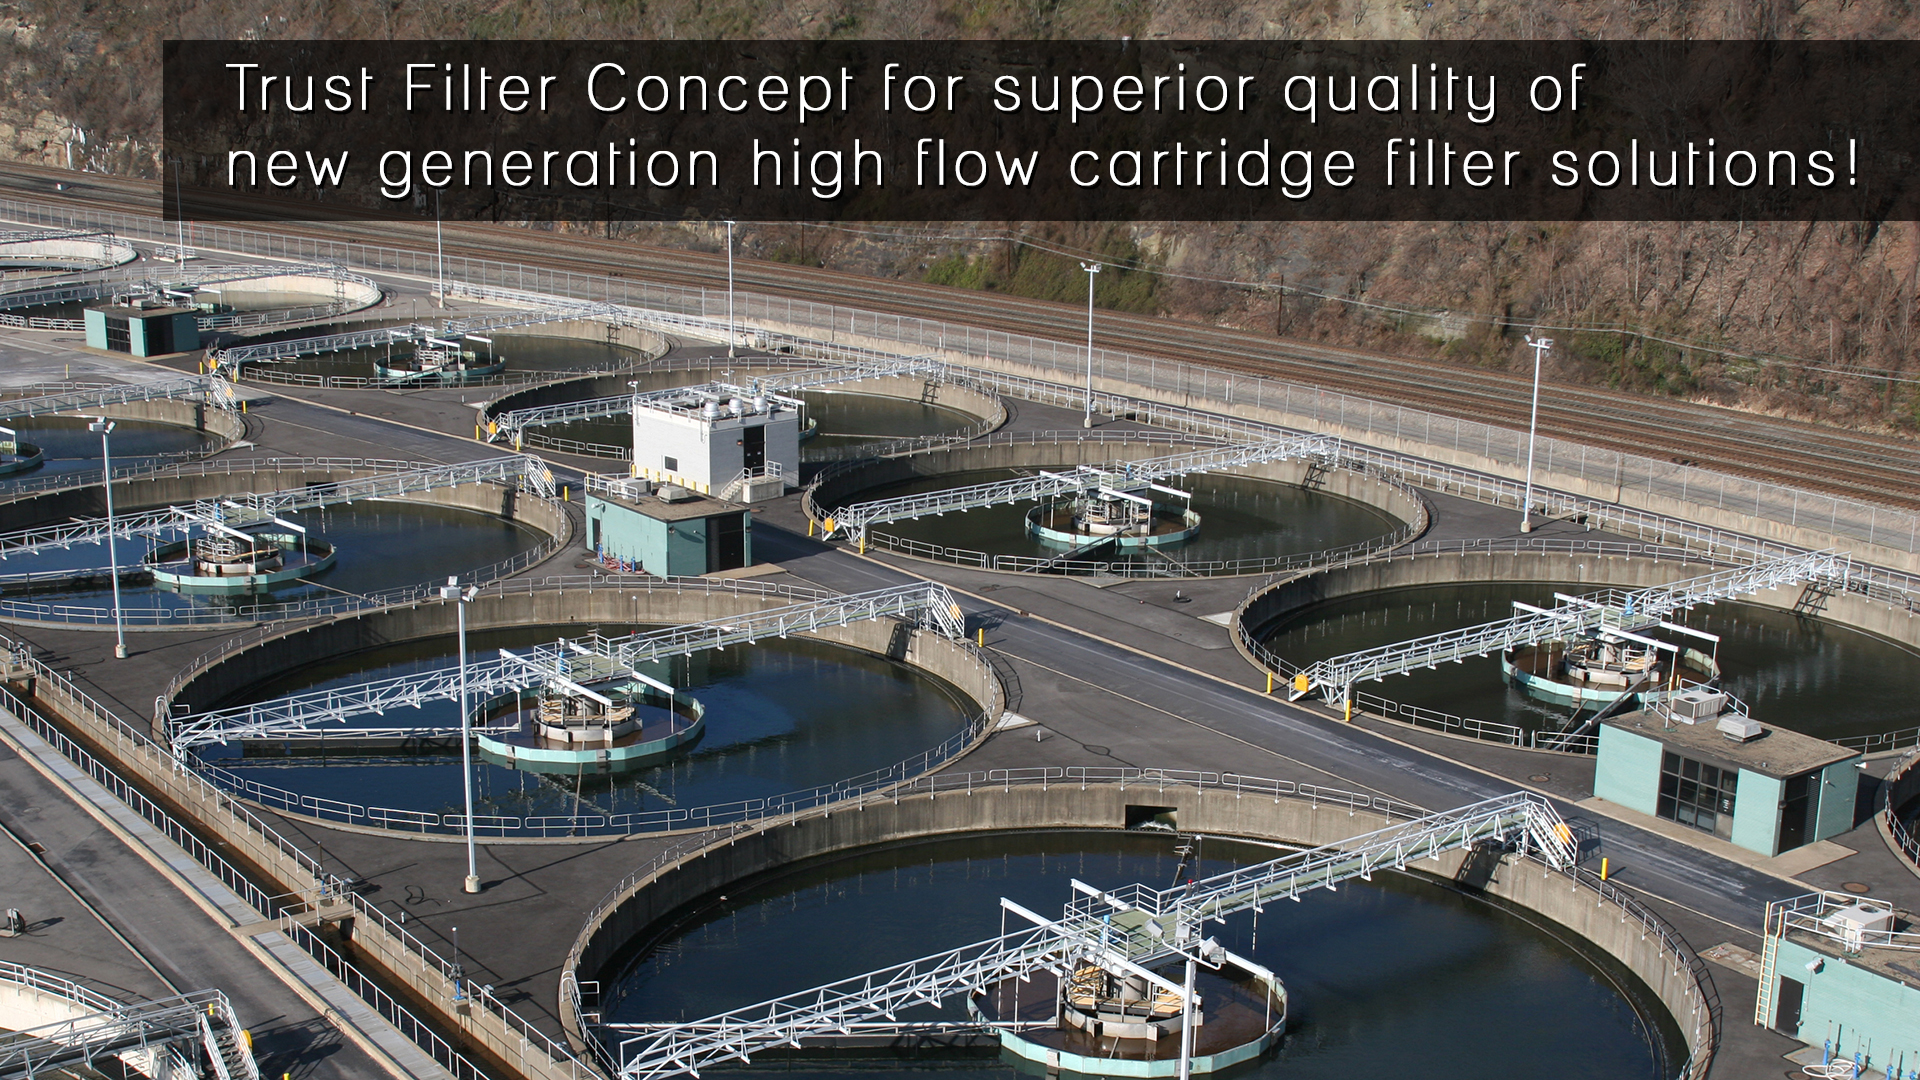 Trust Filter Concept for superior quality of new generation high flow cartridge filter solutions